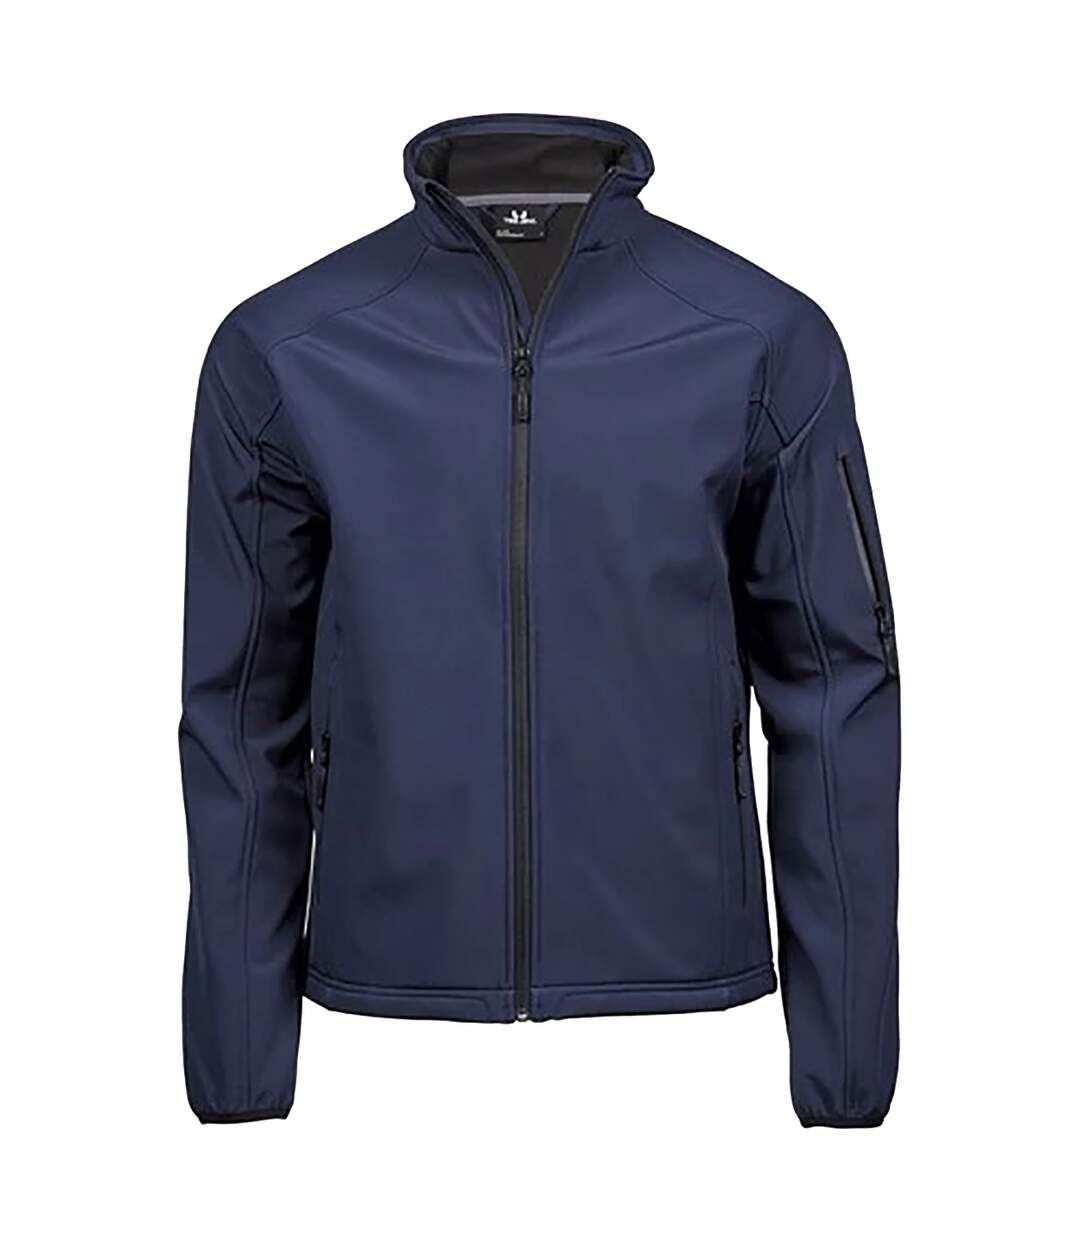 Tee Jays Mens Performance Softshell Jacket (Navy Blue) - UTBC3326